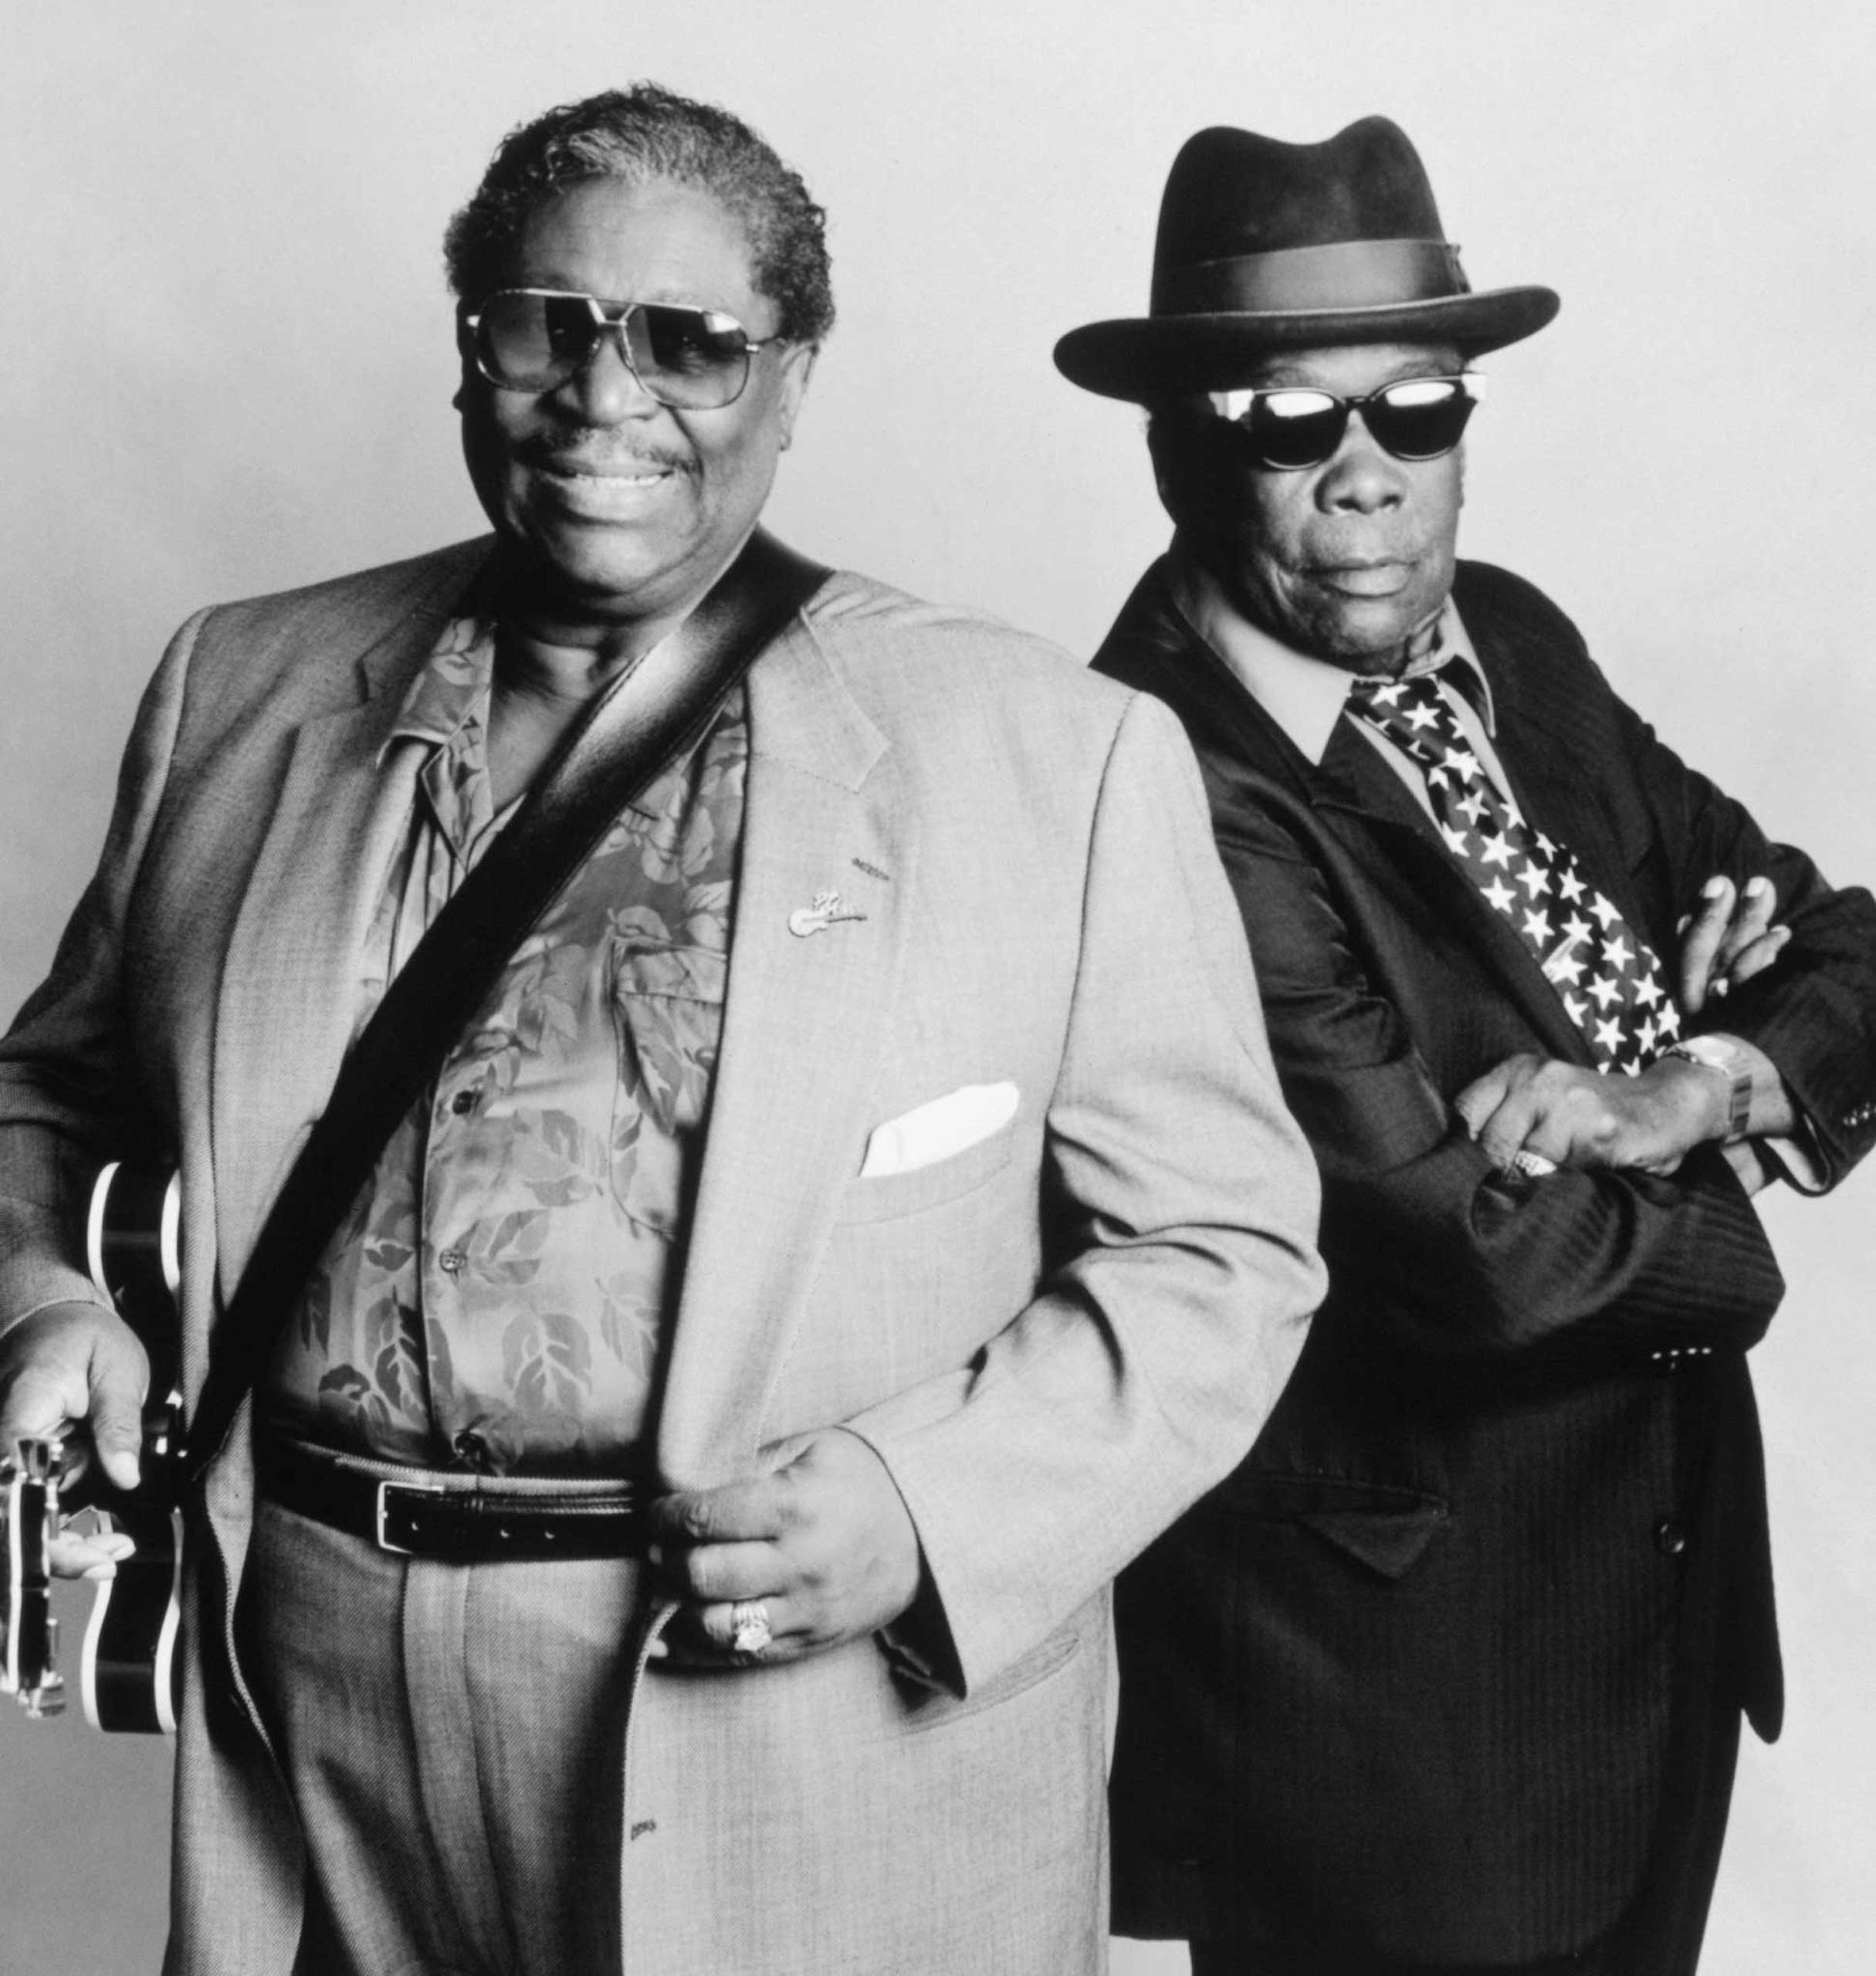 From Left: B.B. King and John Lee Hooker pose for a portrait on Jan. 1, 1997.